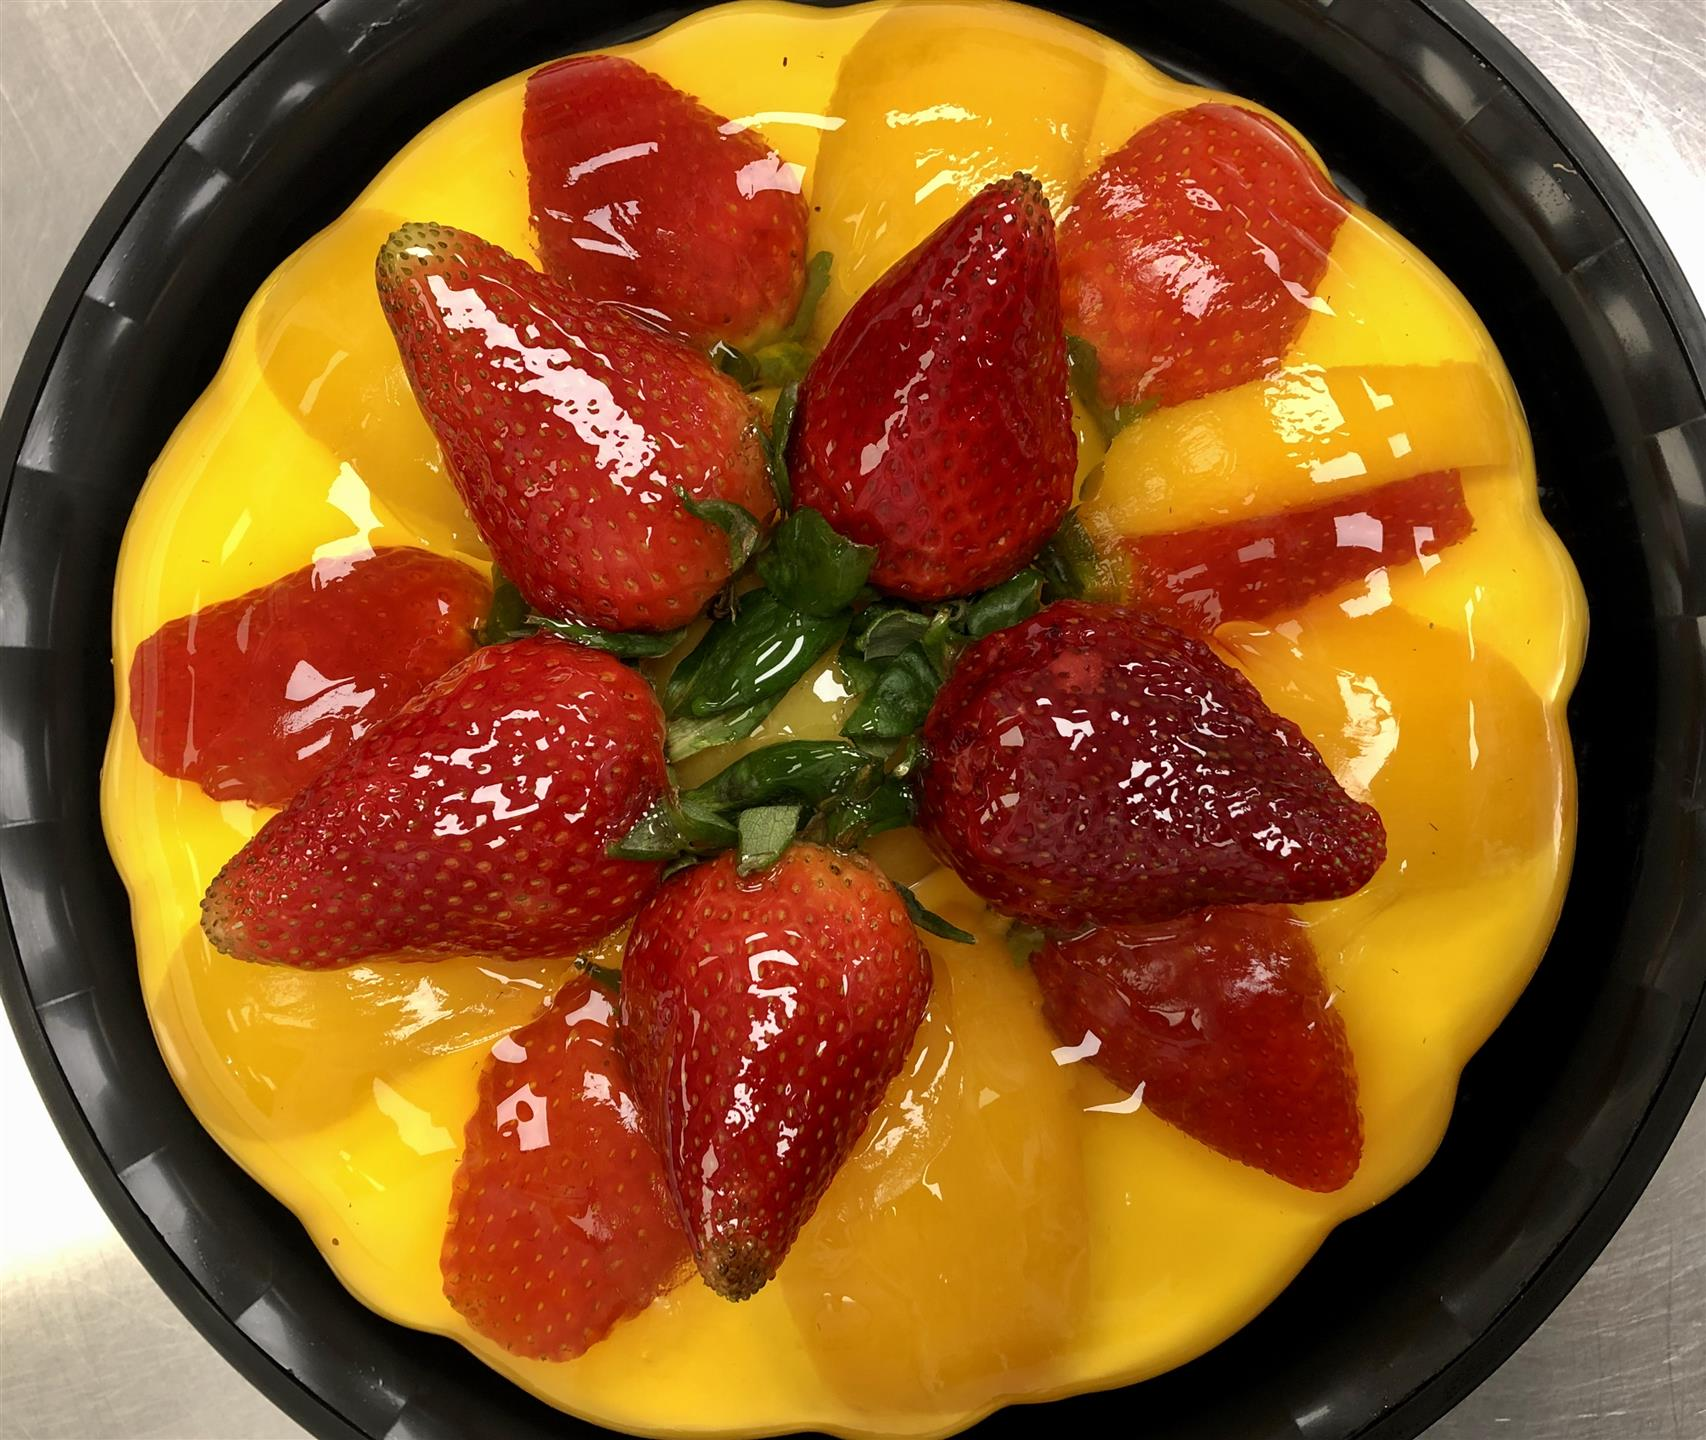 gelatina with mangoes and strawberries on top